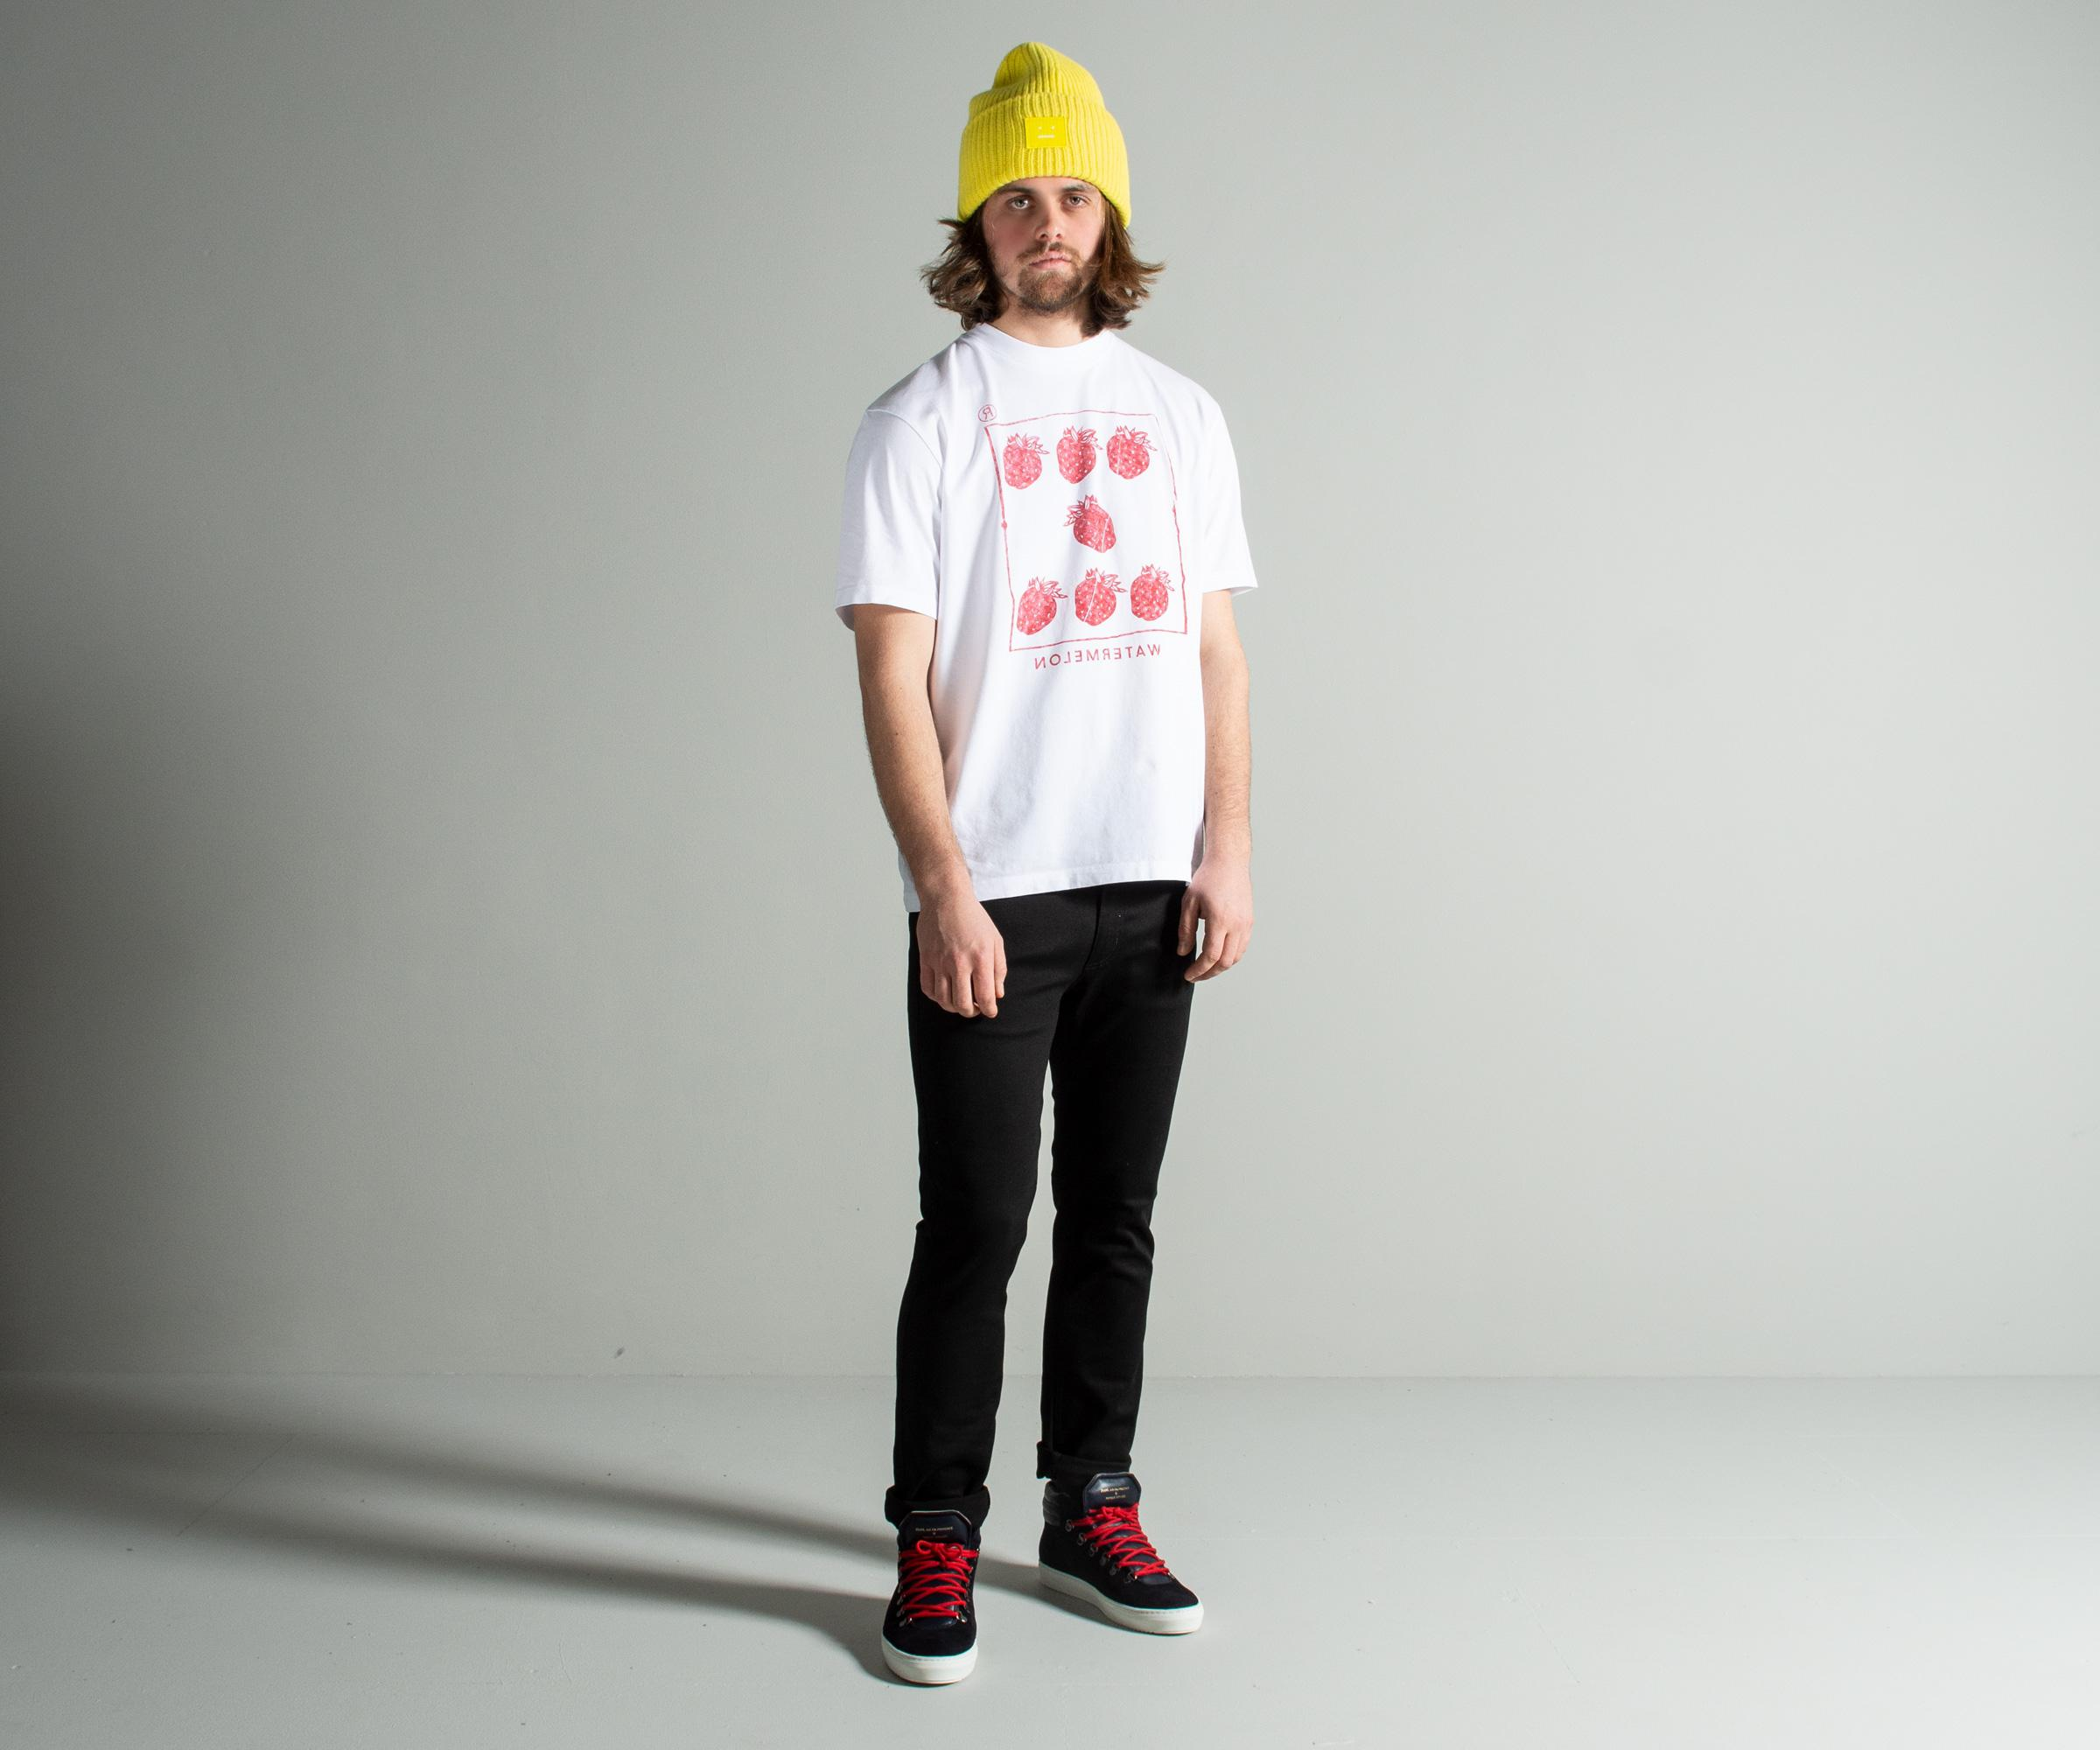 01d49be11 Acne Studios Crew Neck 'watermelon' Printed T-shirt White in White ...